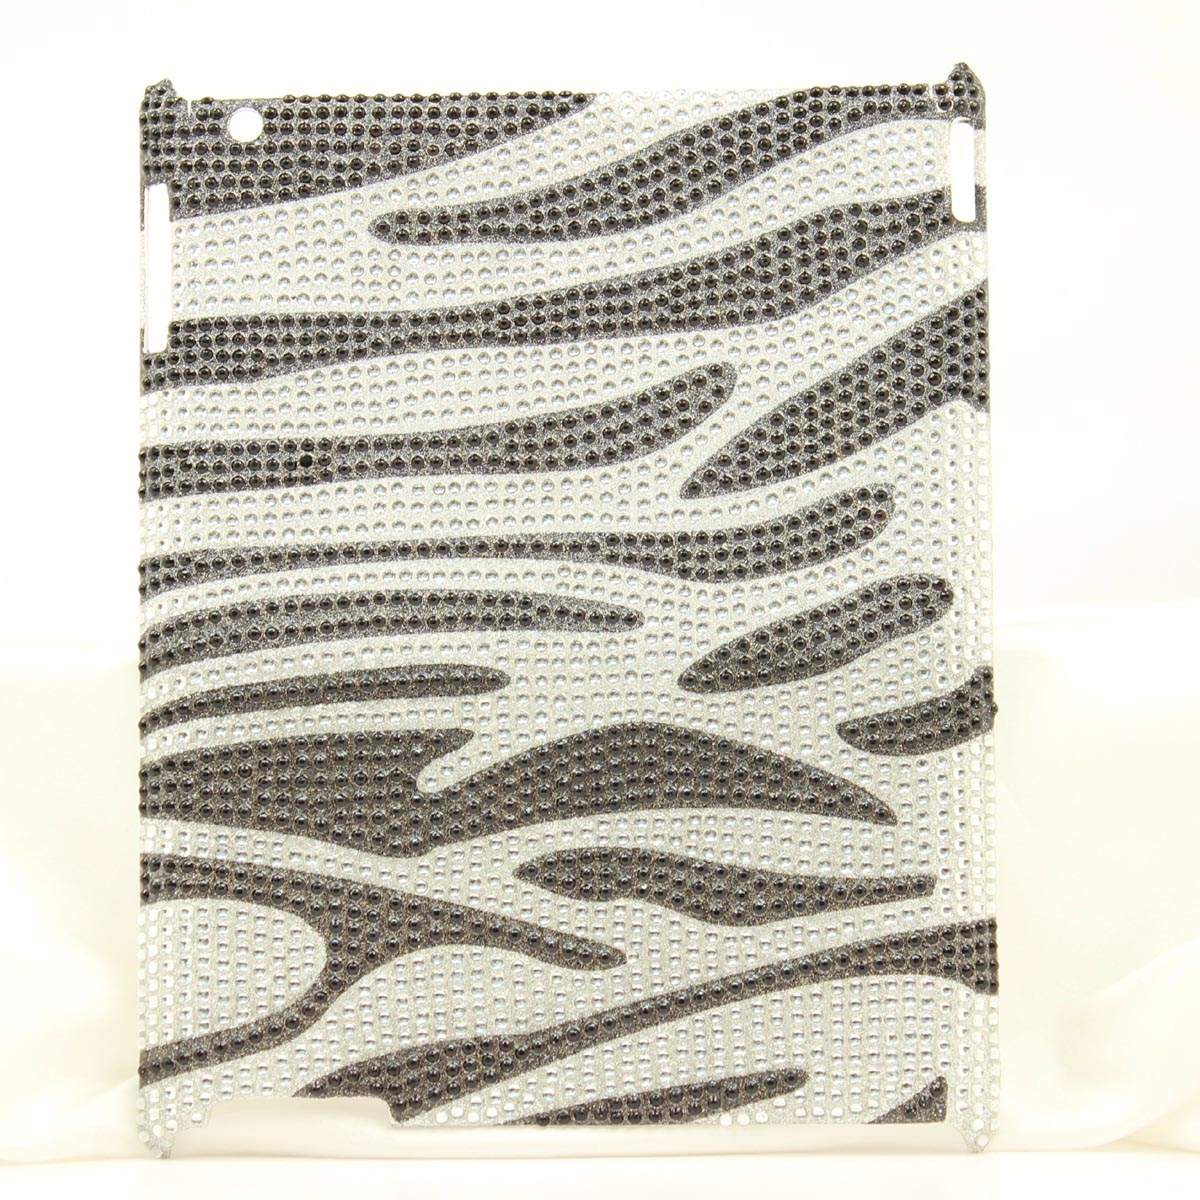 Nocona Zebra Crystal Ipad4 Cover